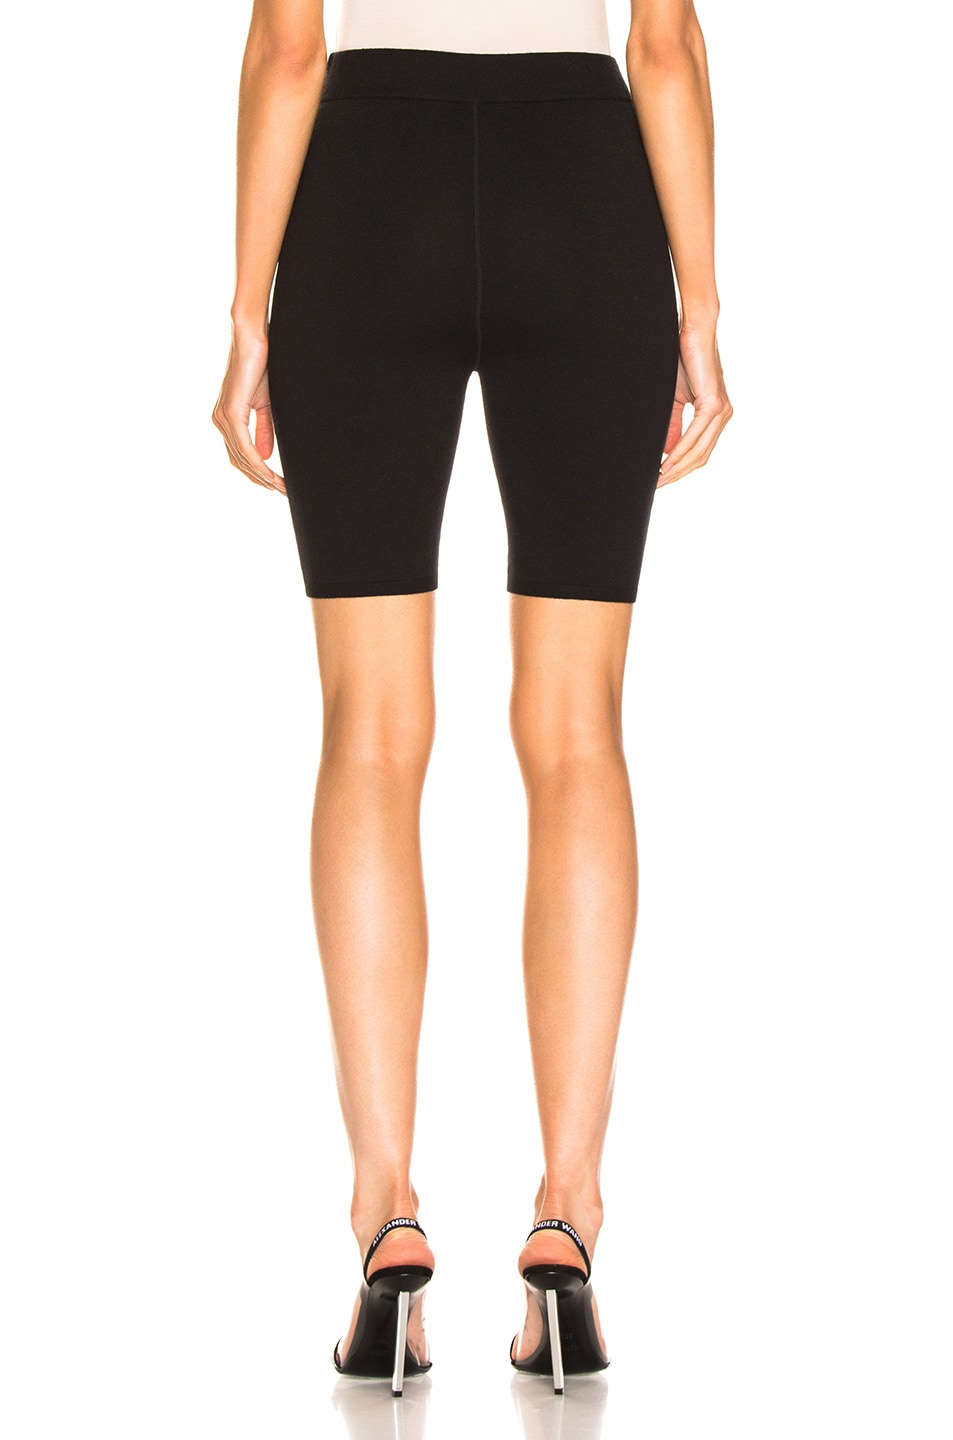 Image 3 of T by Alexander Wang Bodycon Basic Biker Short in Black